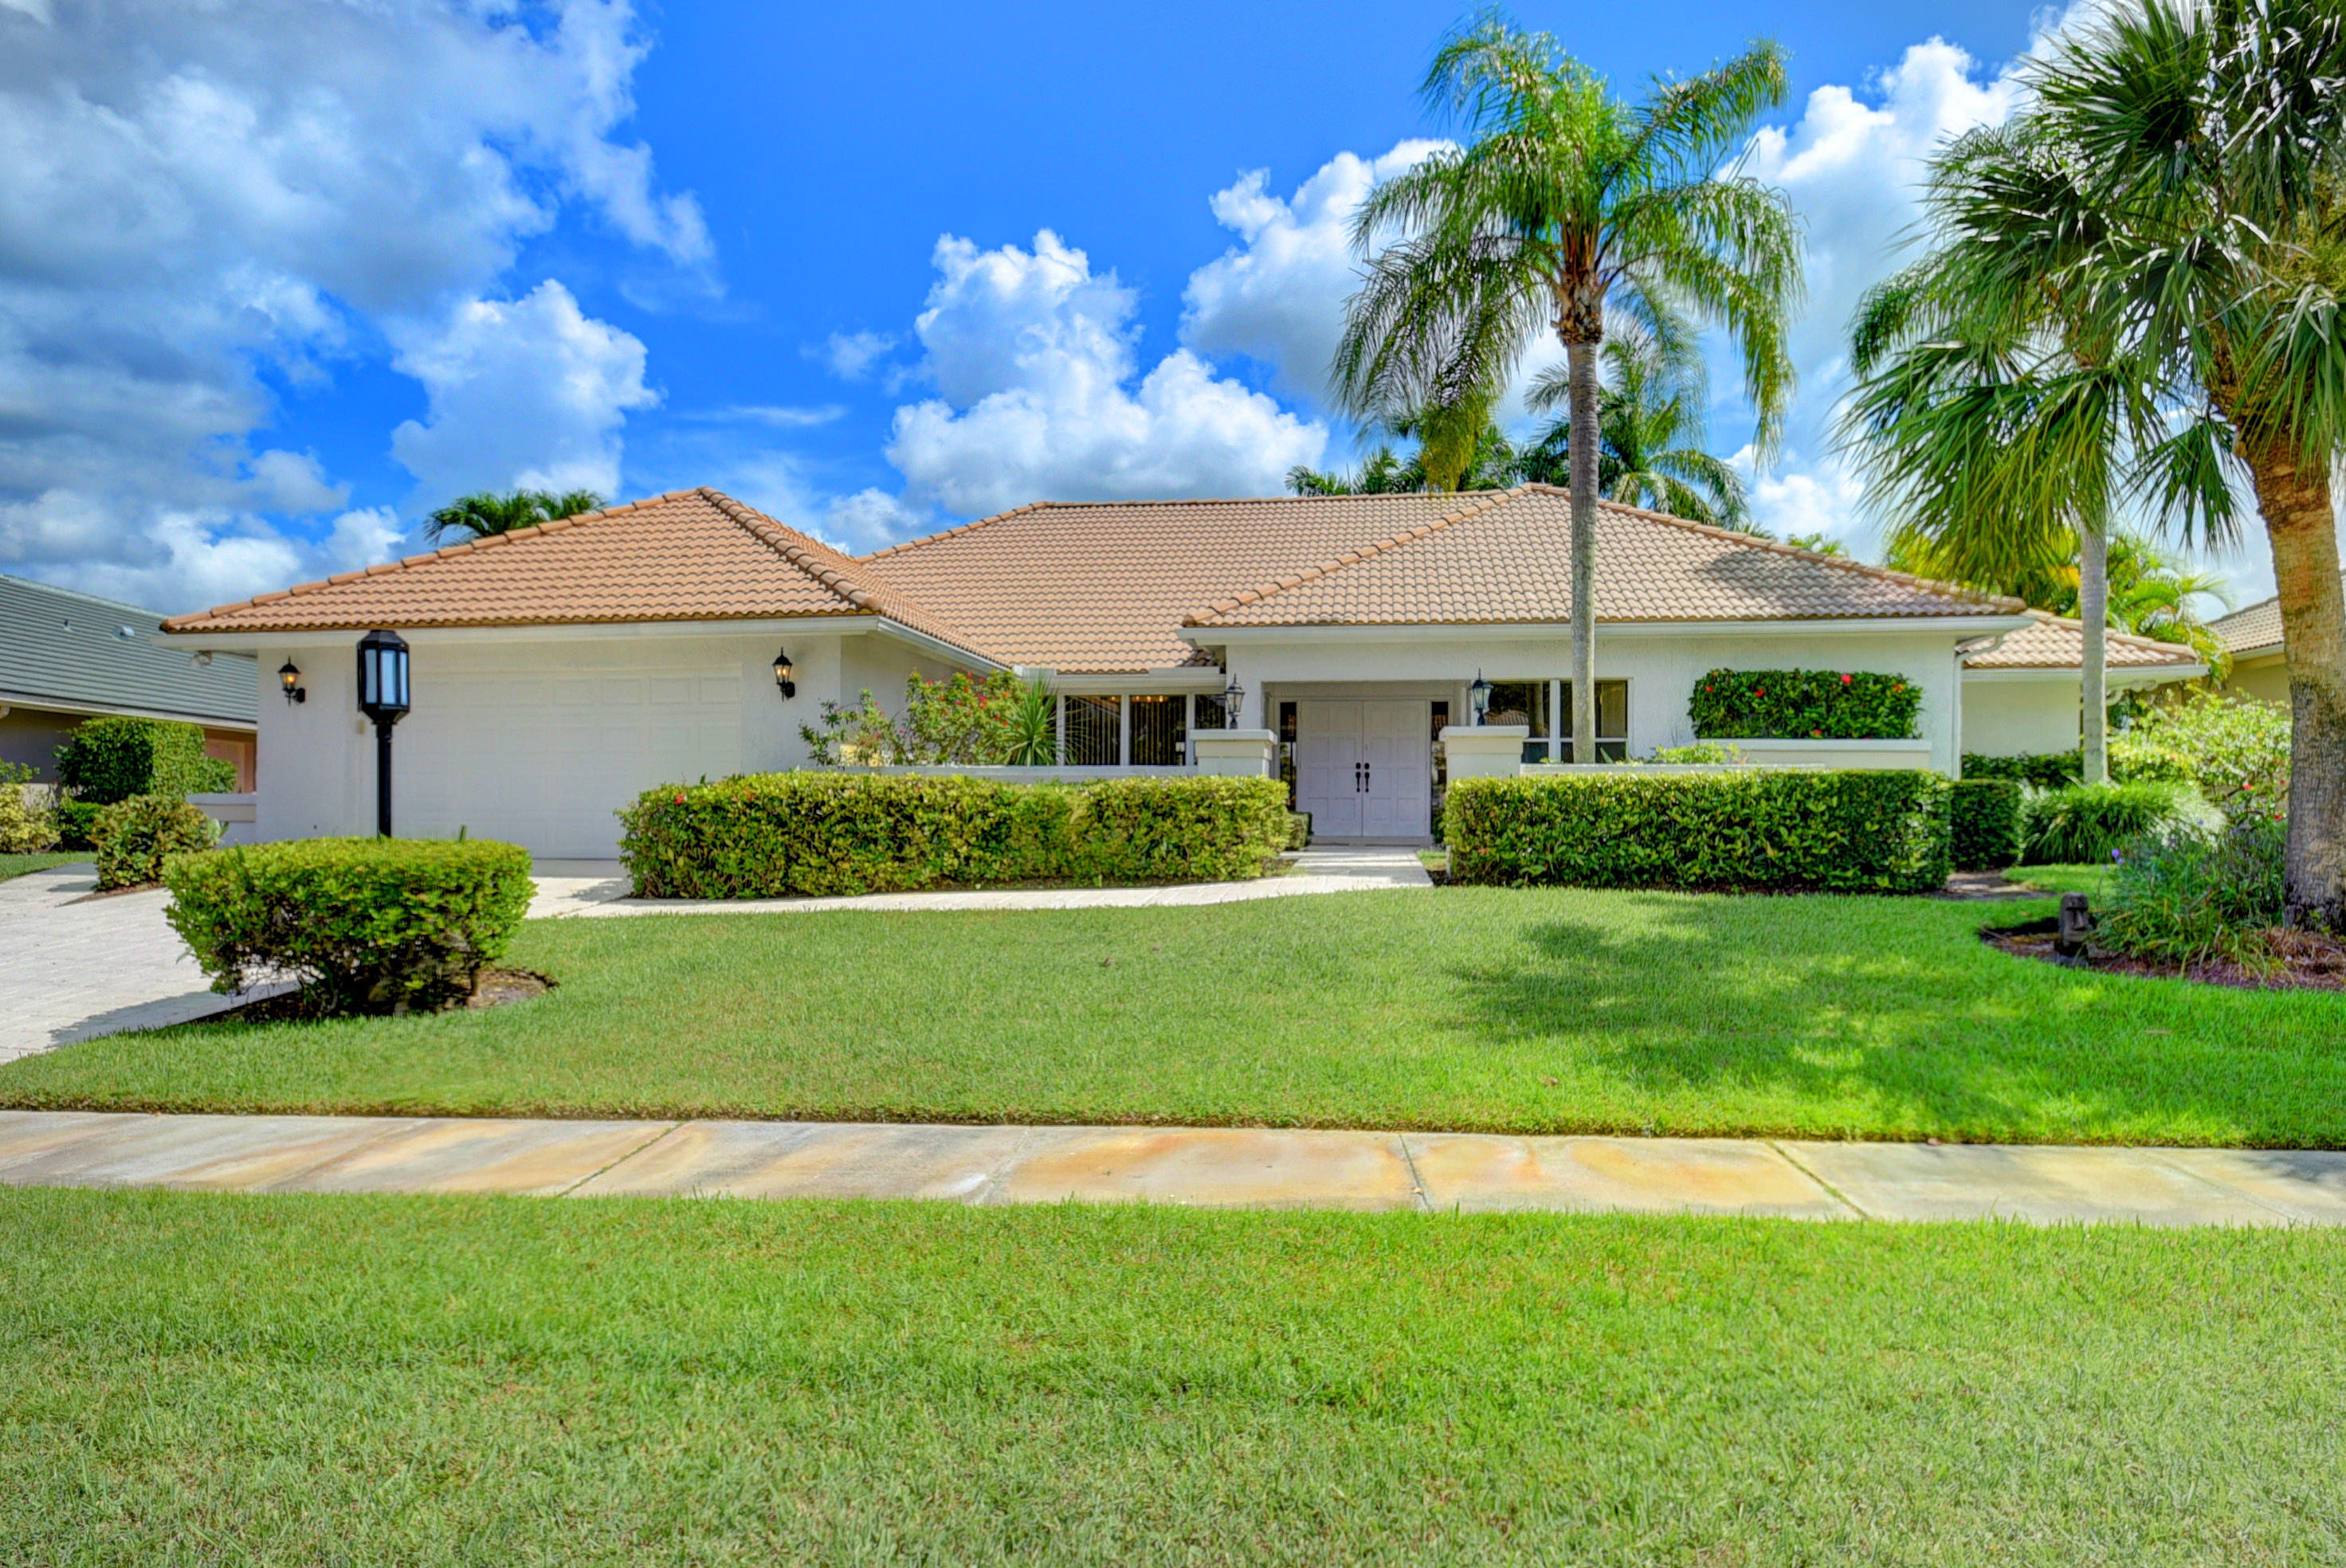 Photo of 10771 Ashmont Drive, Boca Raton, FL 33498